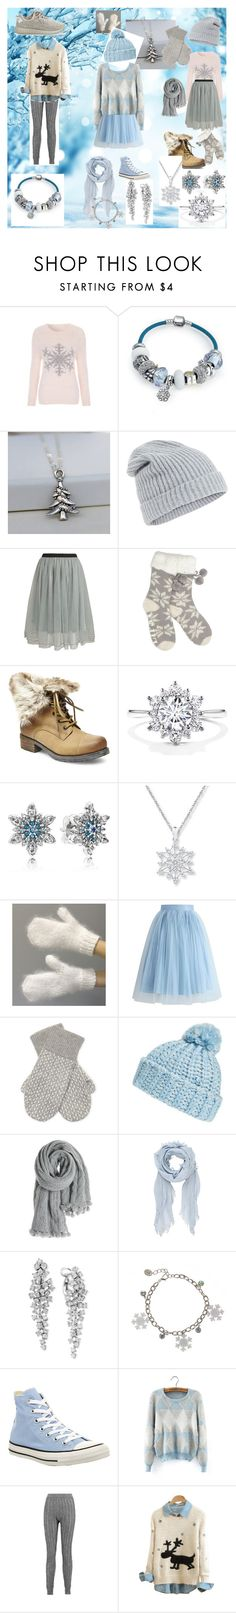 """""""Let it snow"""" by punkrocket ❤ liked on Polyvore featuring Bling Jewelry, Accessorize, Relaxfeel, Lipsy, Steve Madden, Pandora, Chicwish, White + Warren, BP. and Calypso St. Barth"""